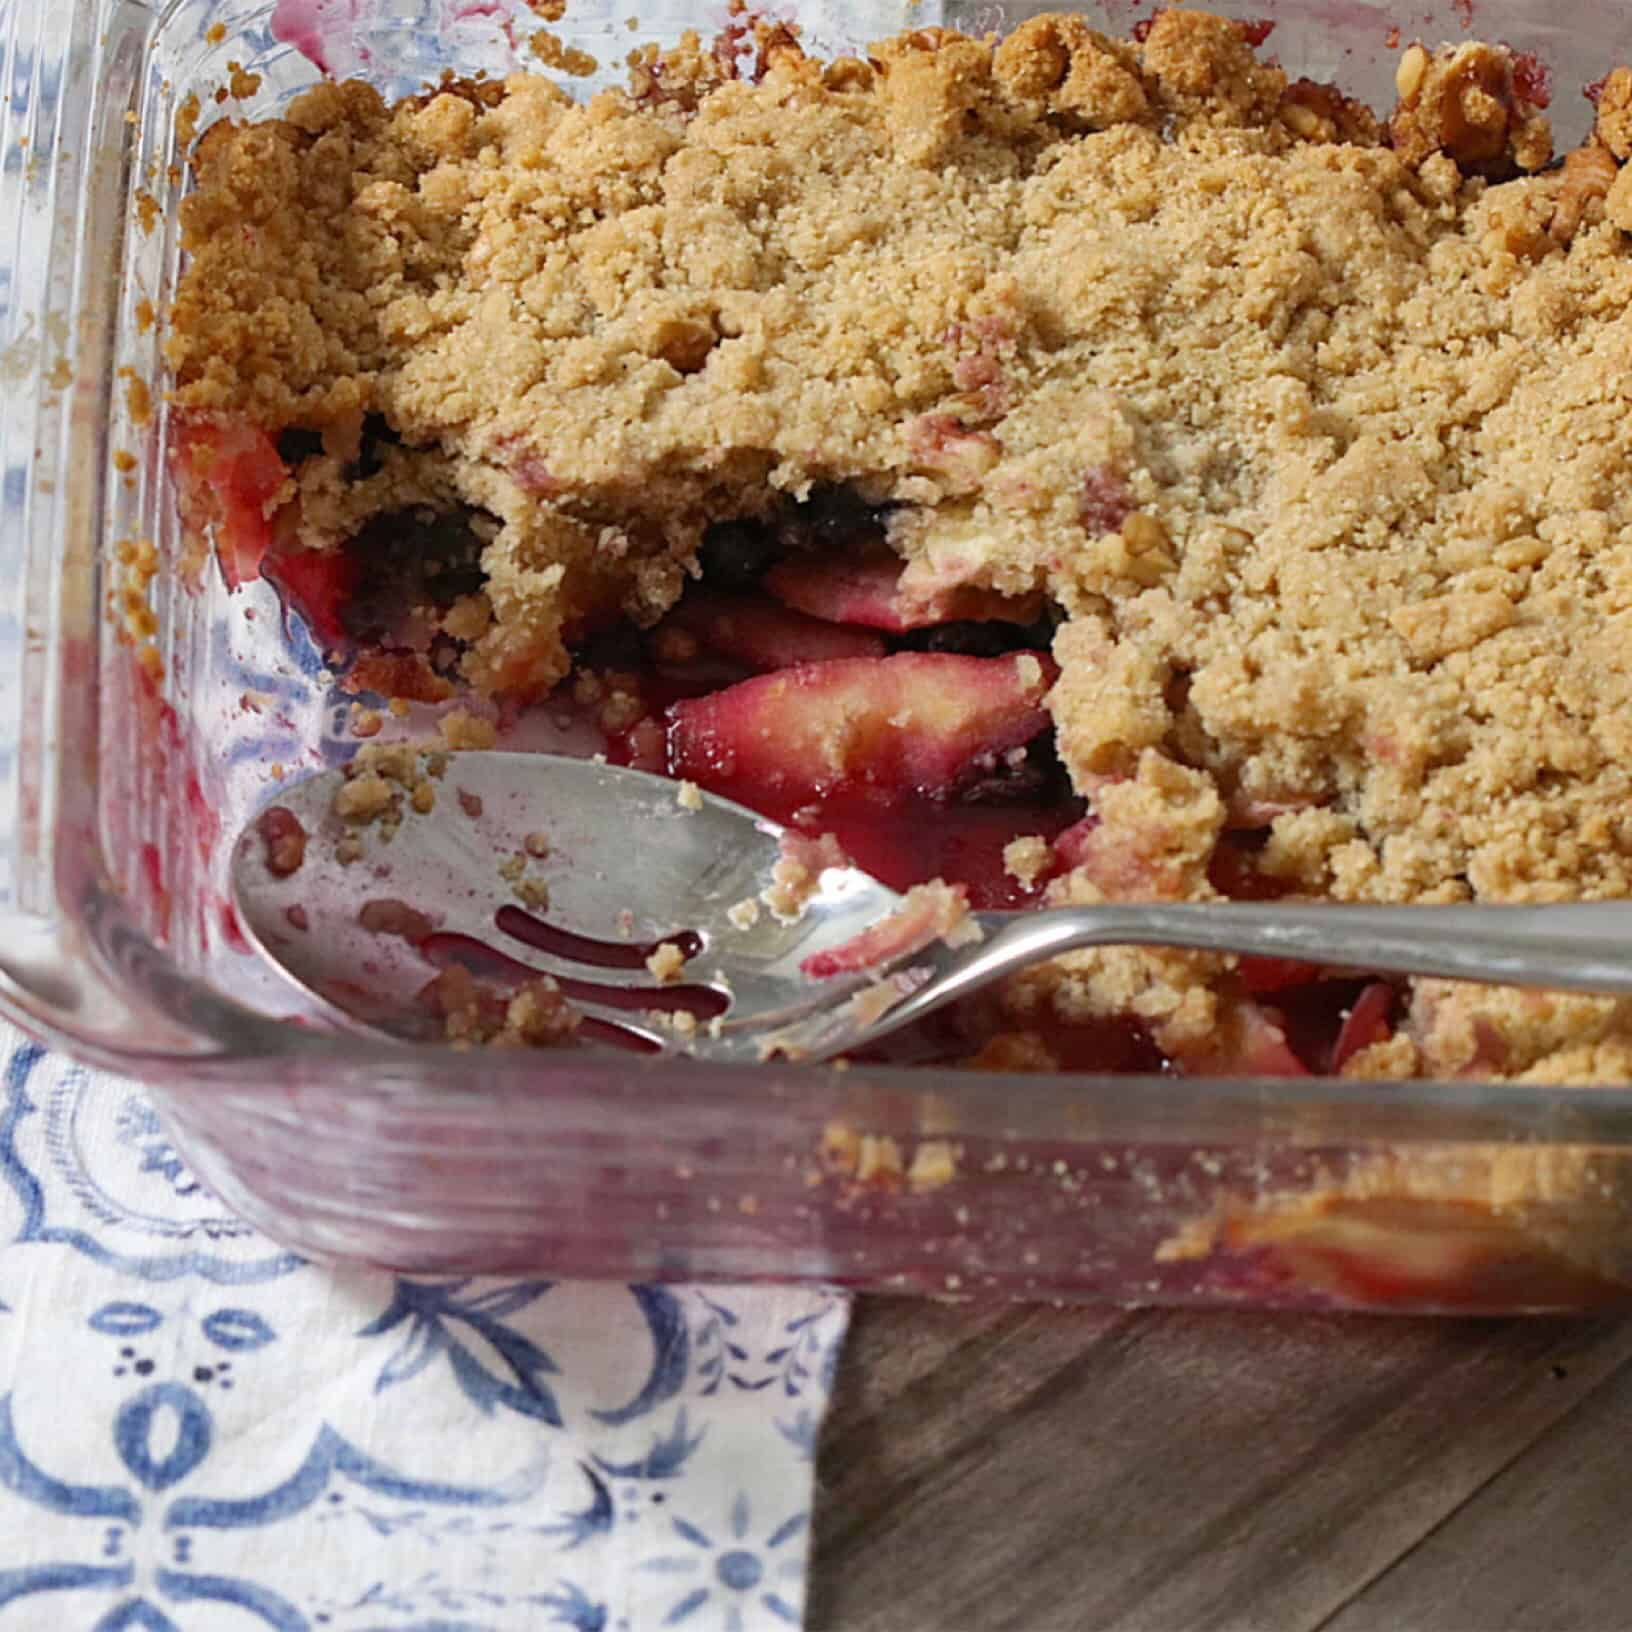 Vegan + Grain-Free Apple Berry Crumble